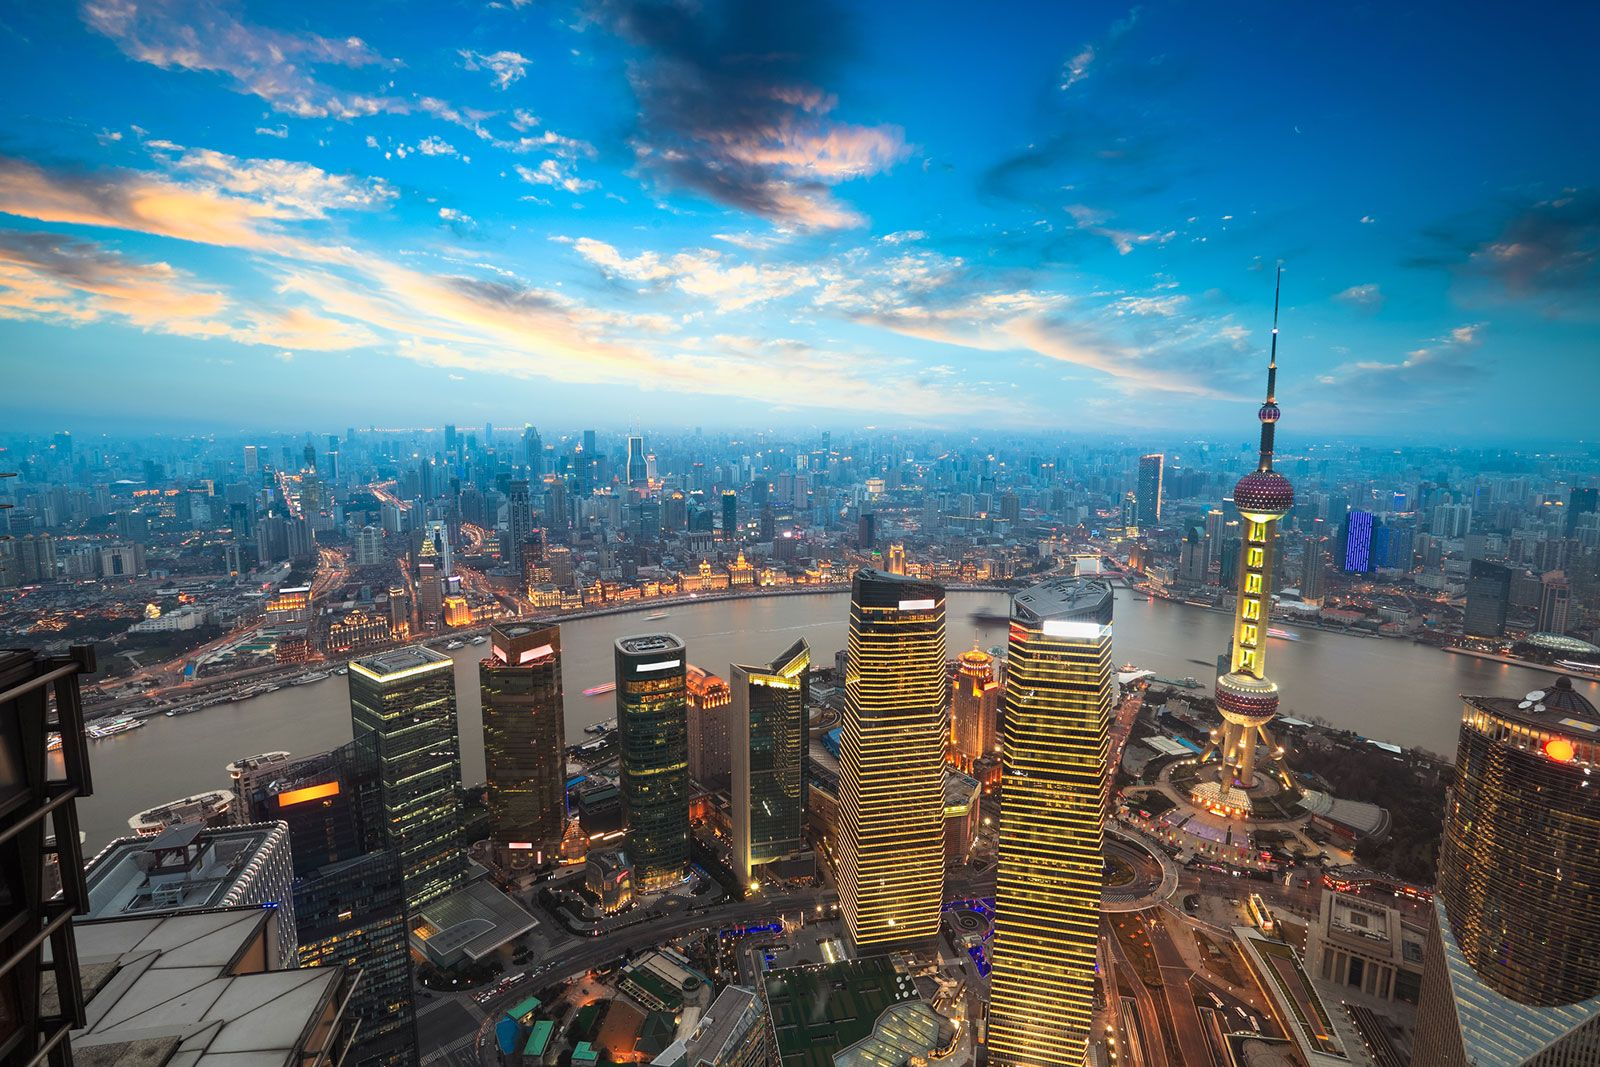 Shanghai Skyline with view of the Oriental Pearl Radio & TV Tower